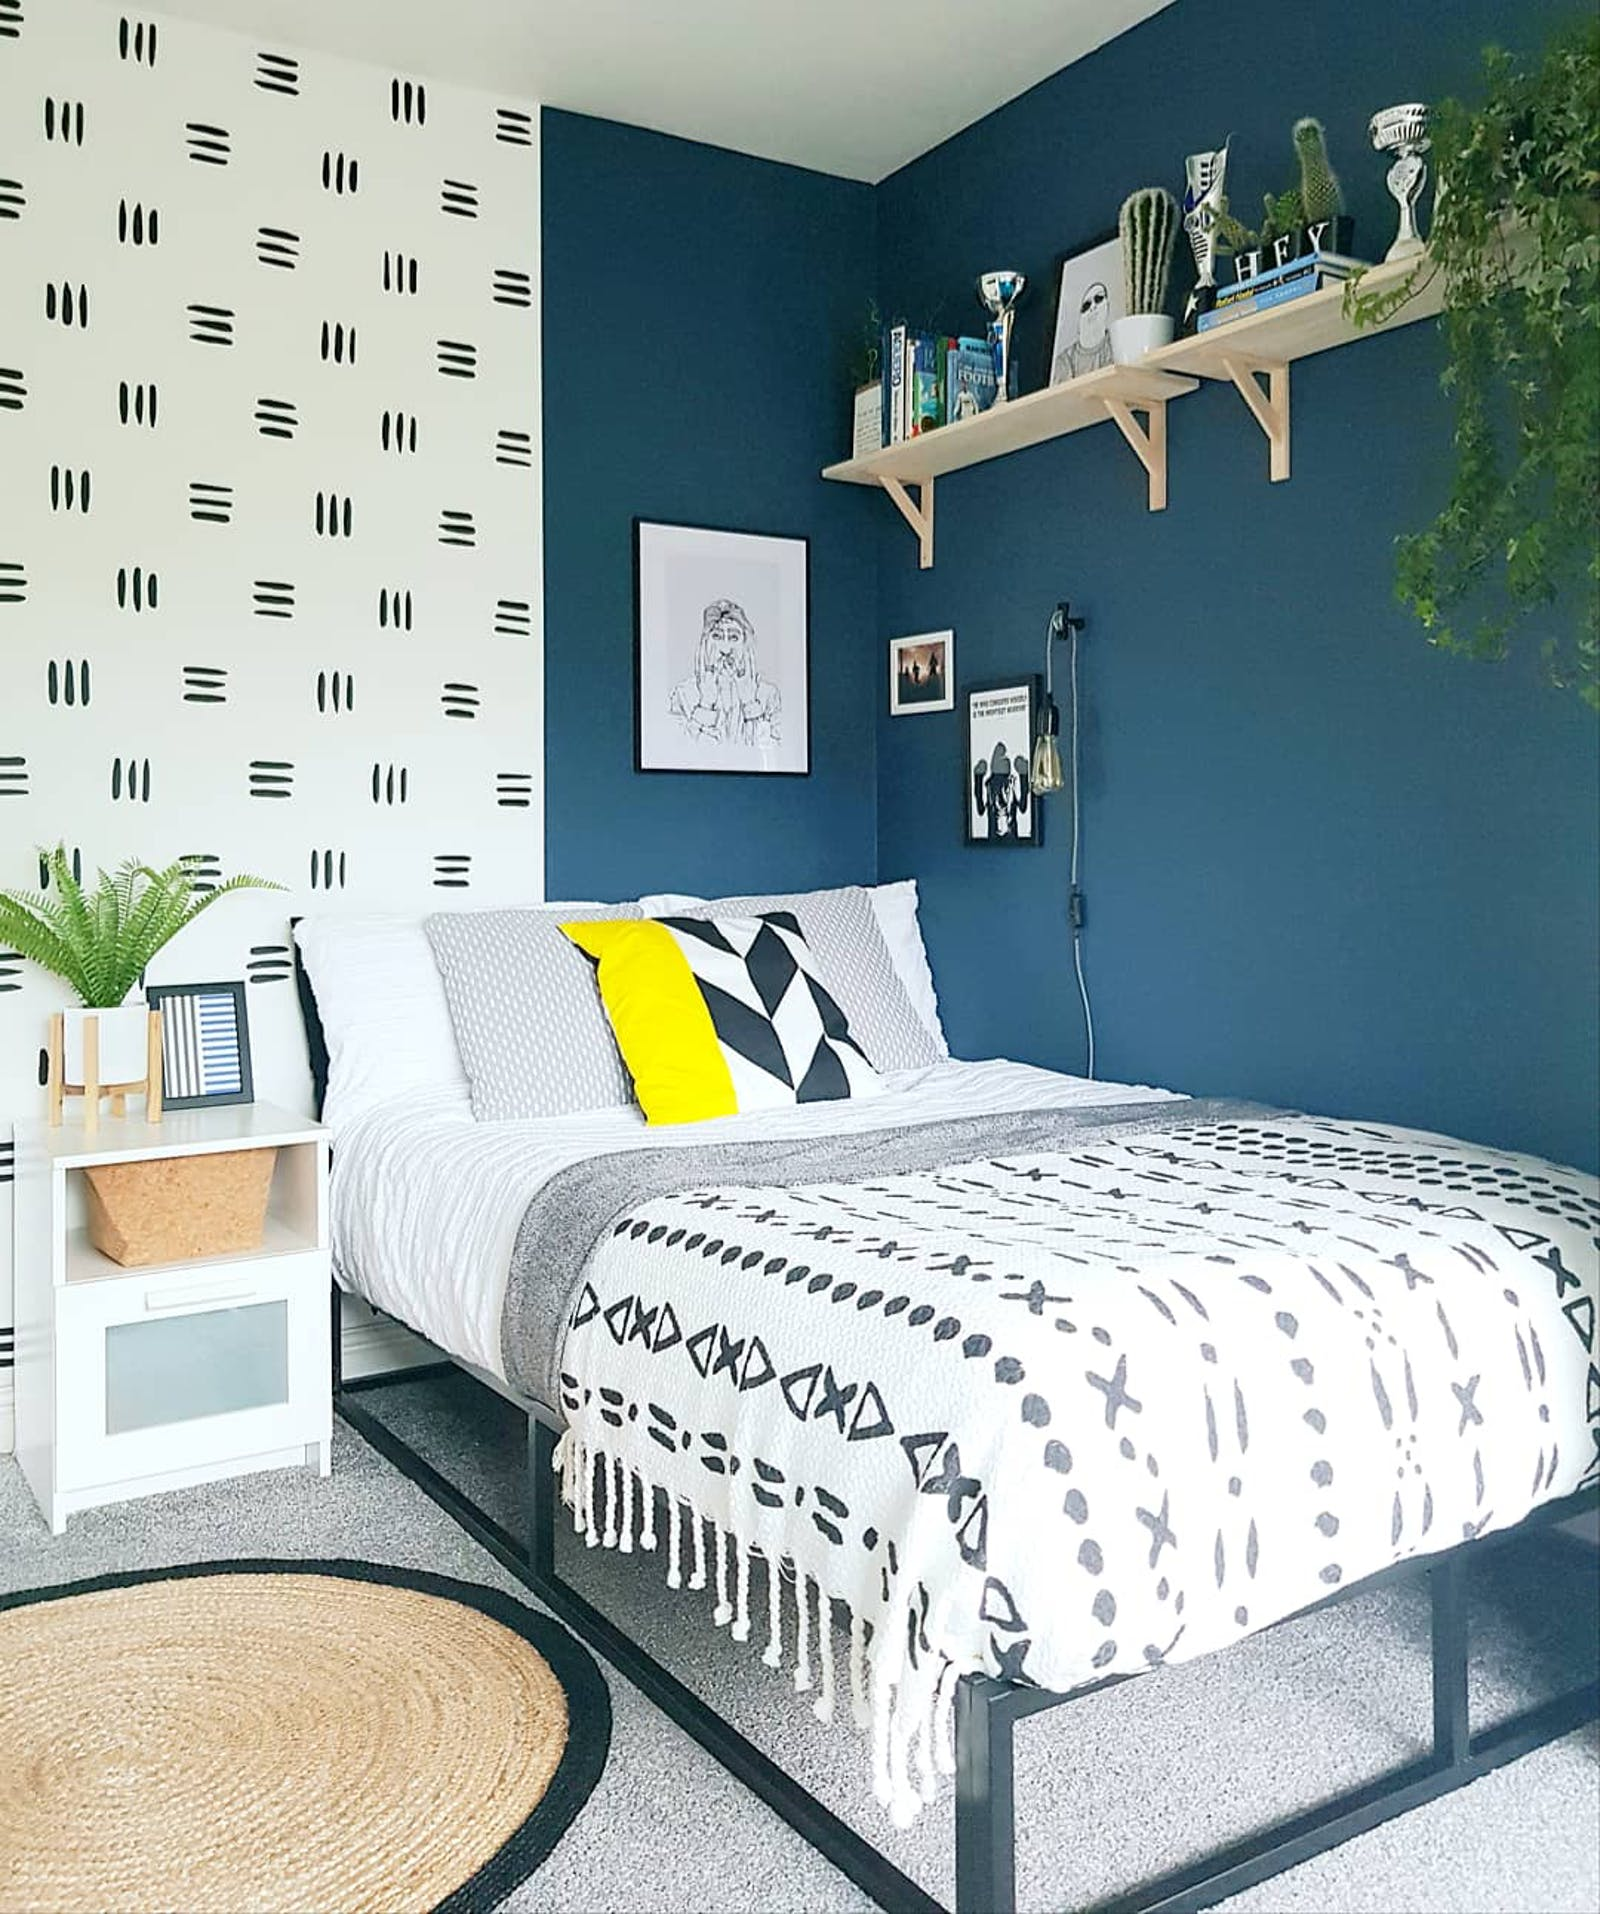 Bedroom with grey carpeted floor and walls painted in Lick Blue 07